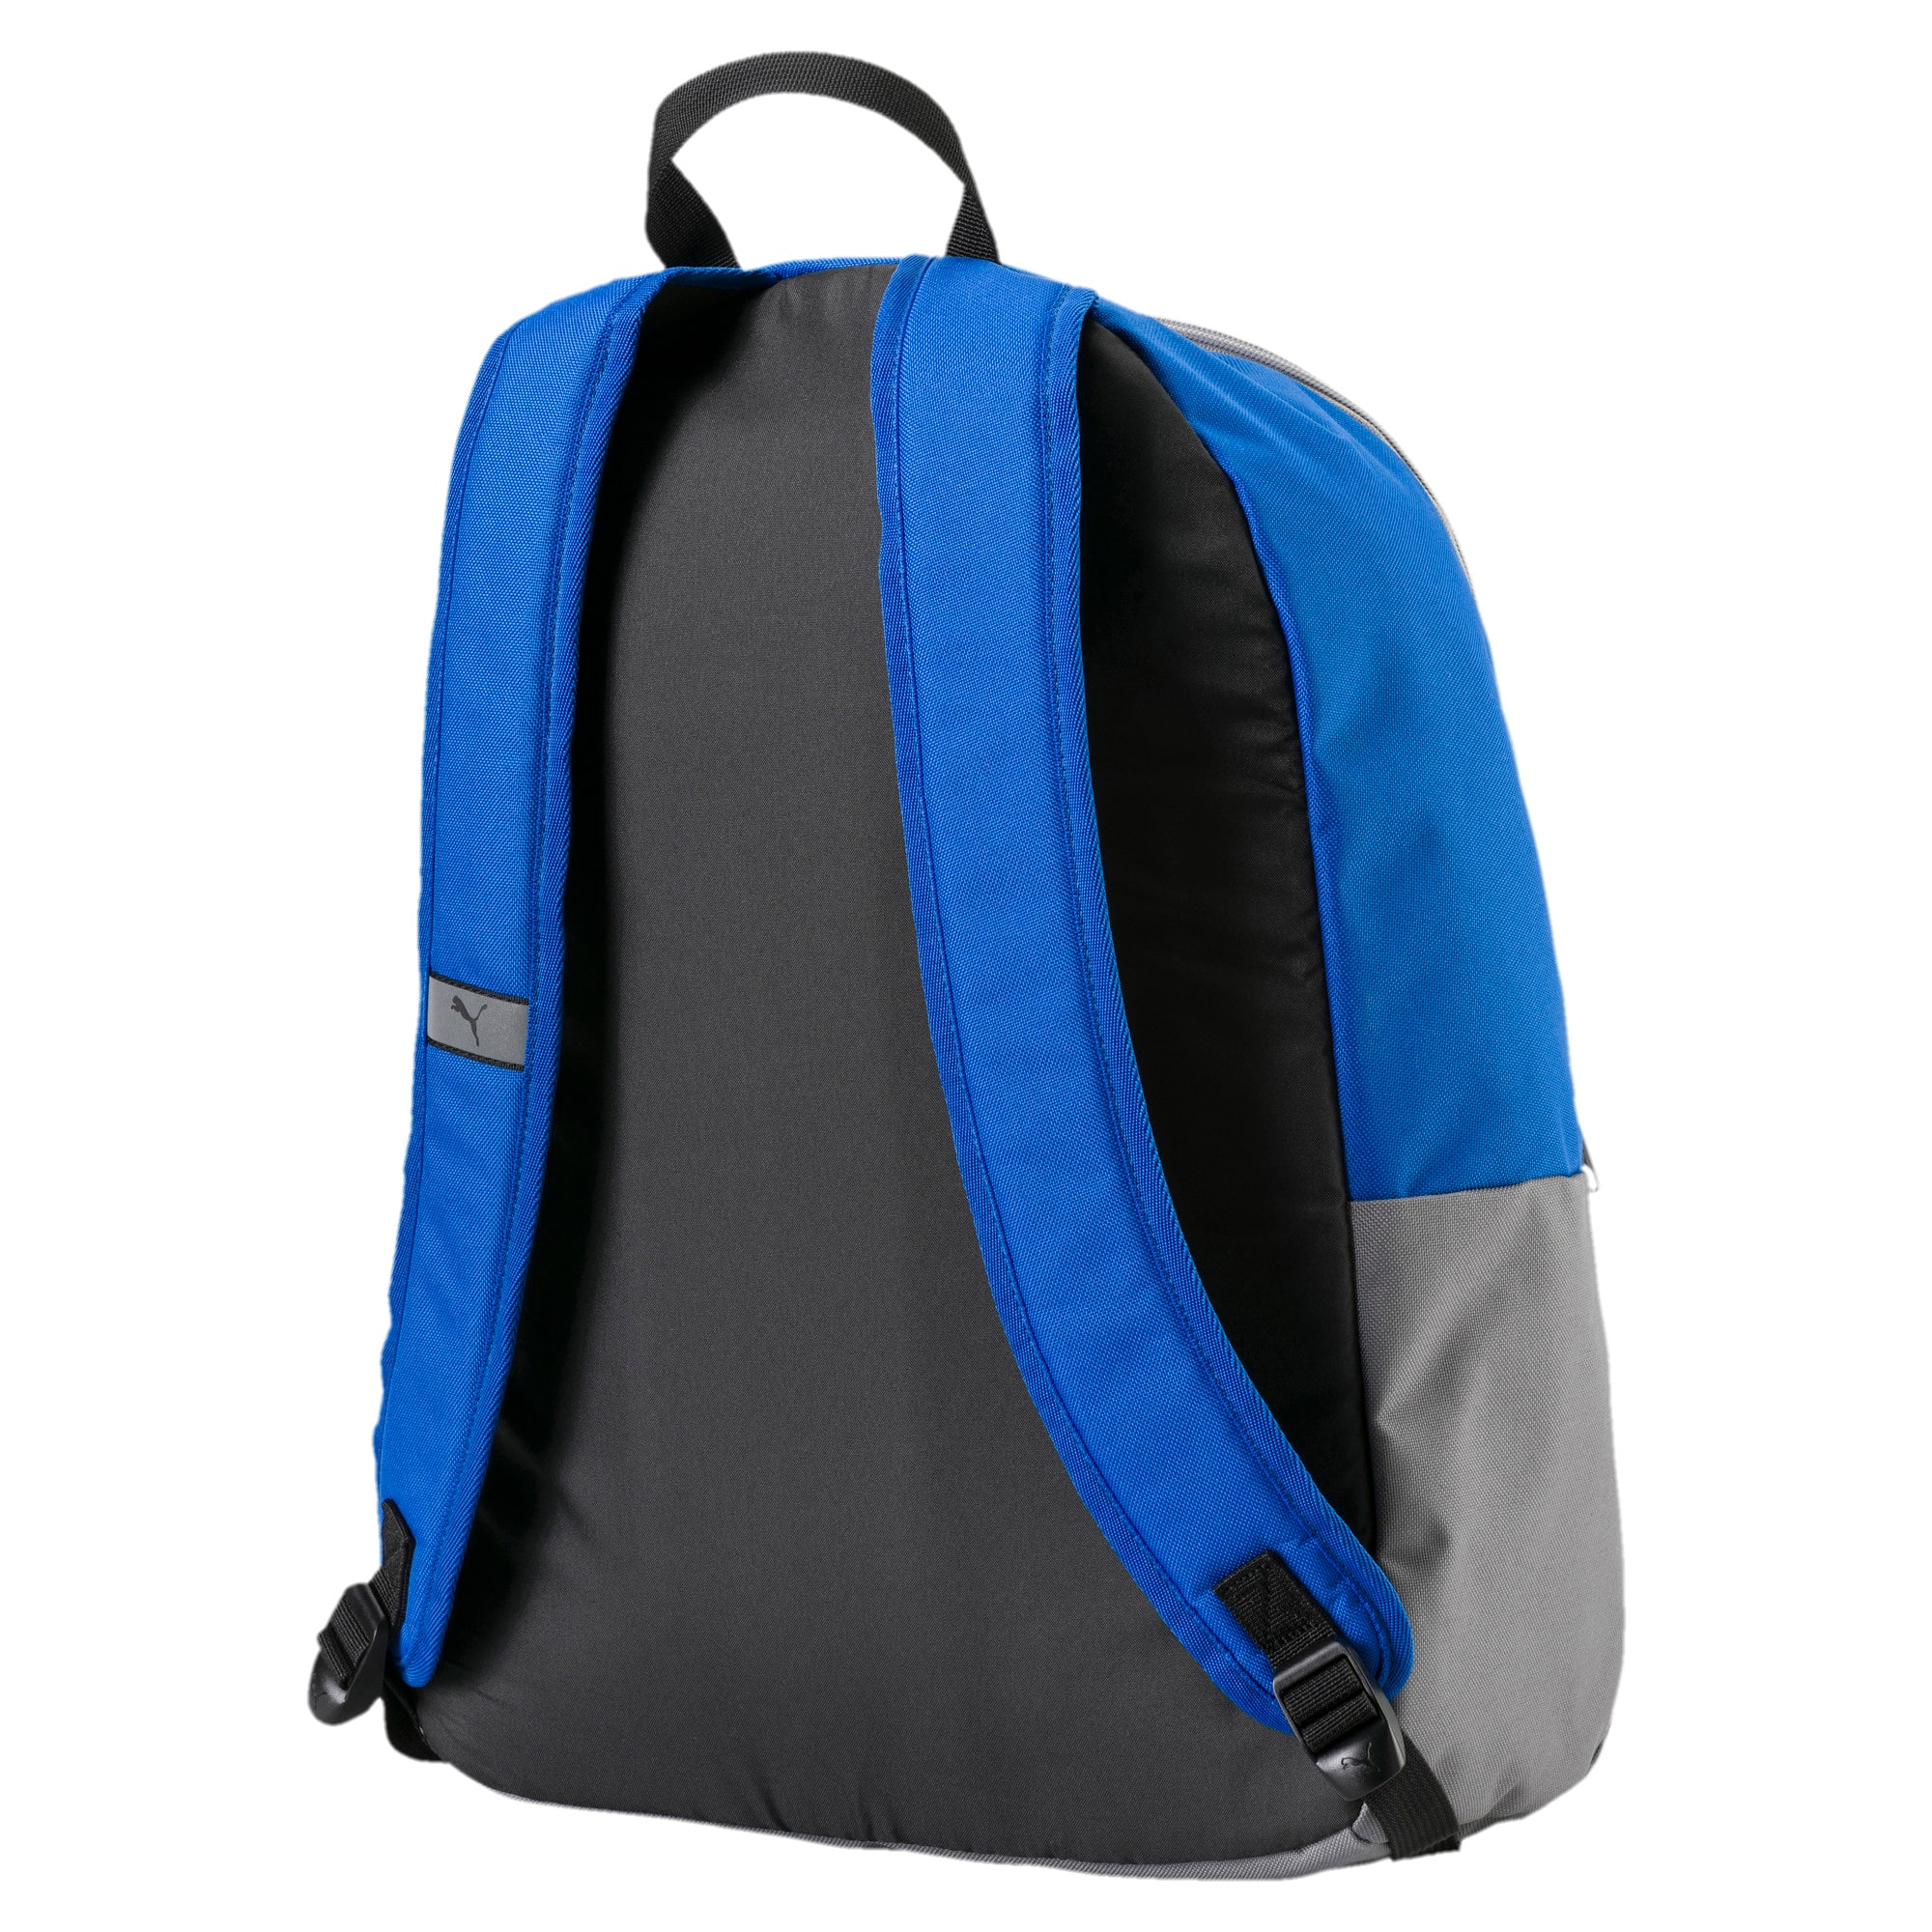 Thumbnail 2 of Phase Backpack II, Lapis Blue-QUIET SHADE, medium-IND